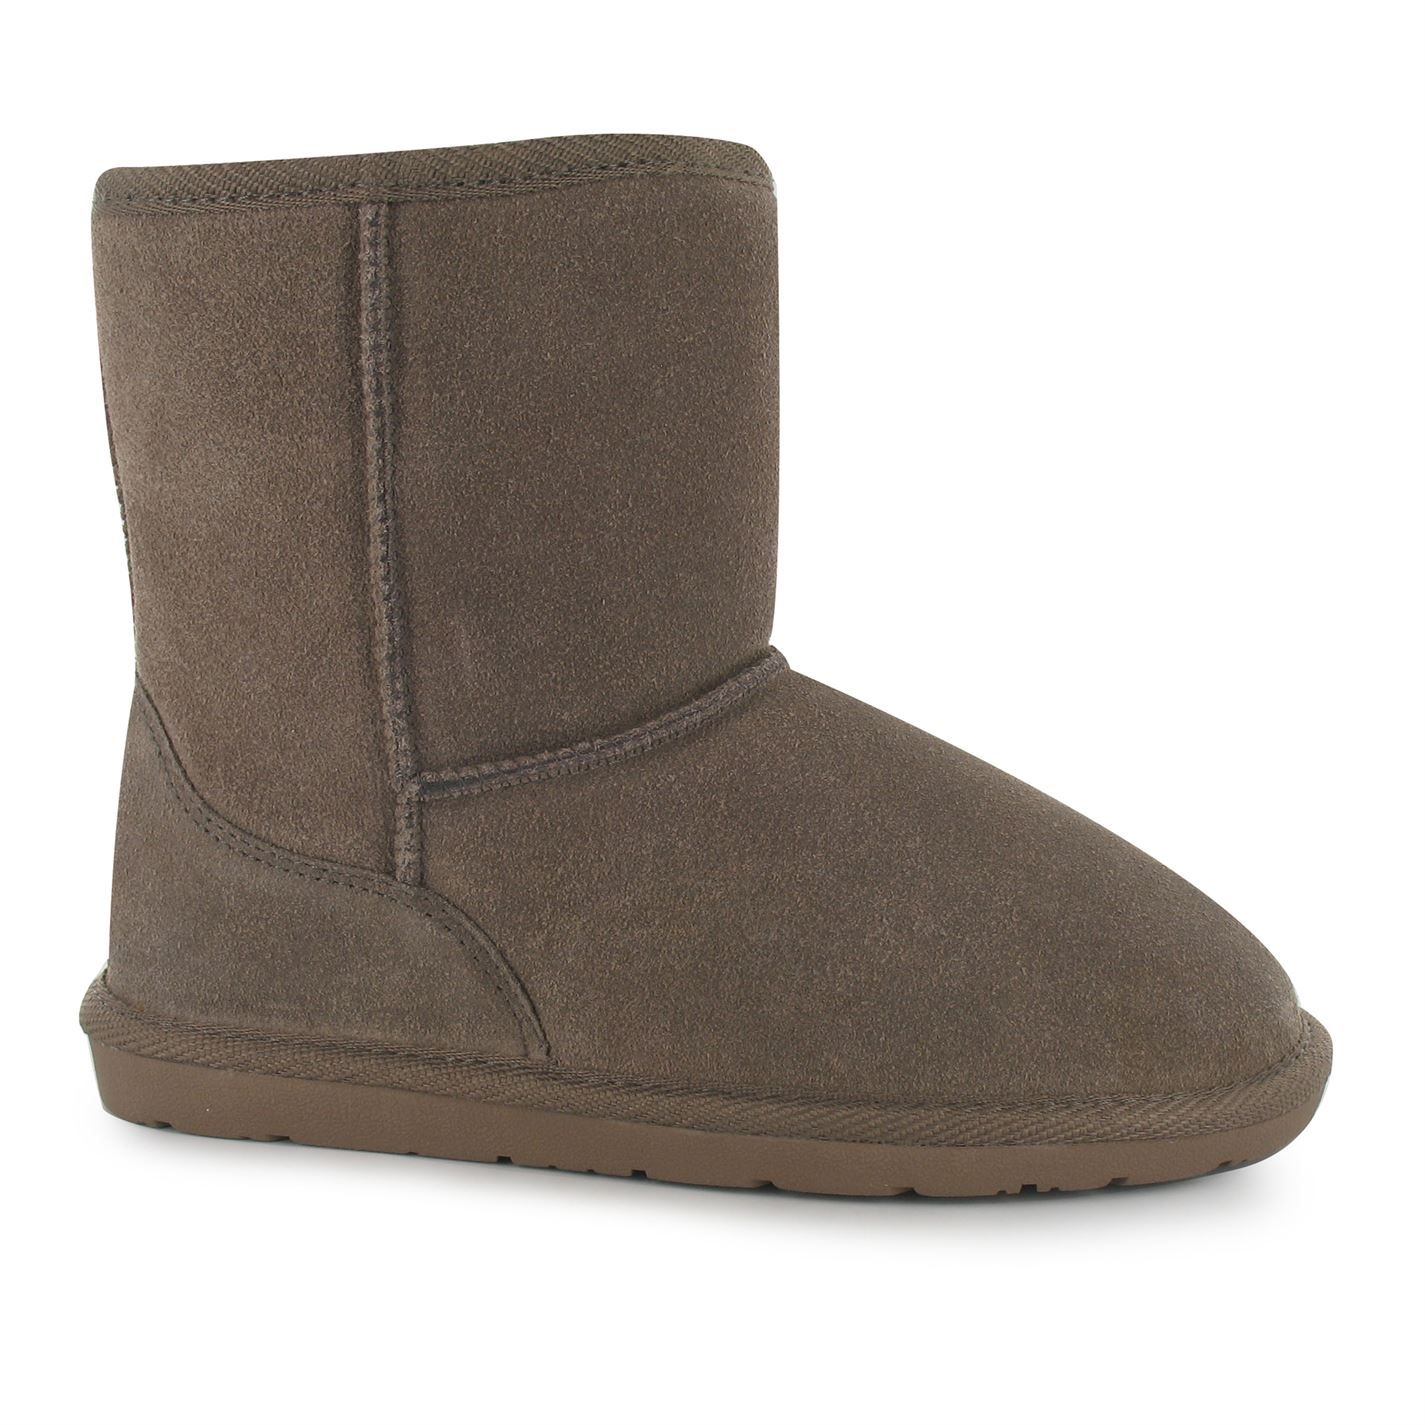 SoulCal | SoulCal Selby Snug Childs Boots | Childs Snug Boots